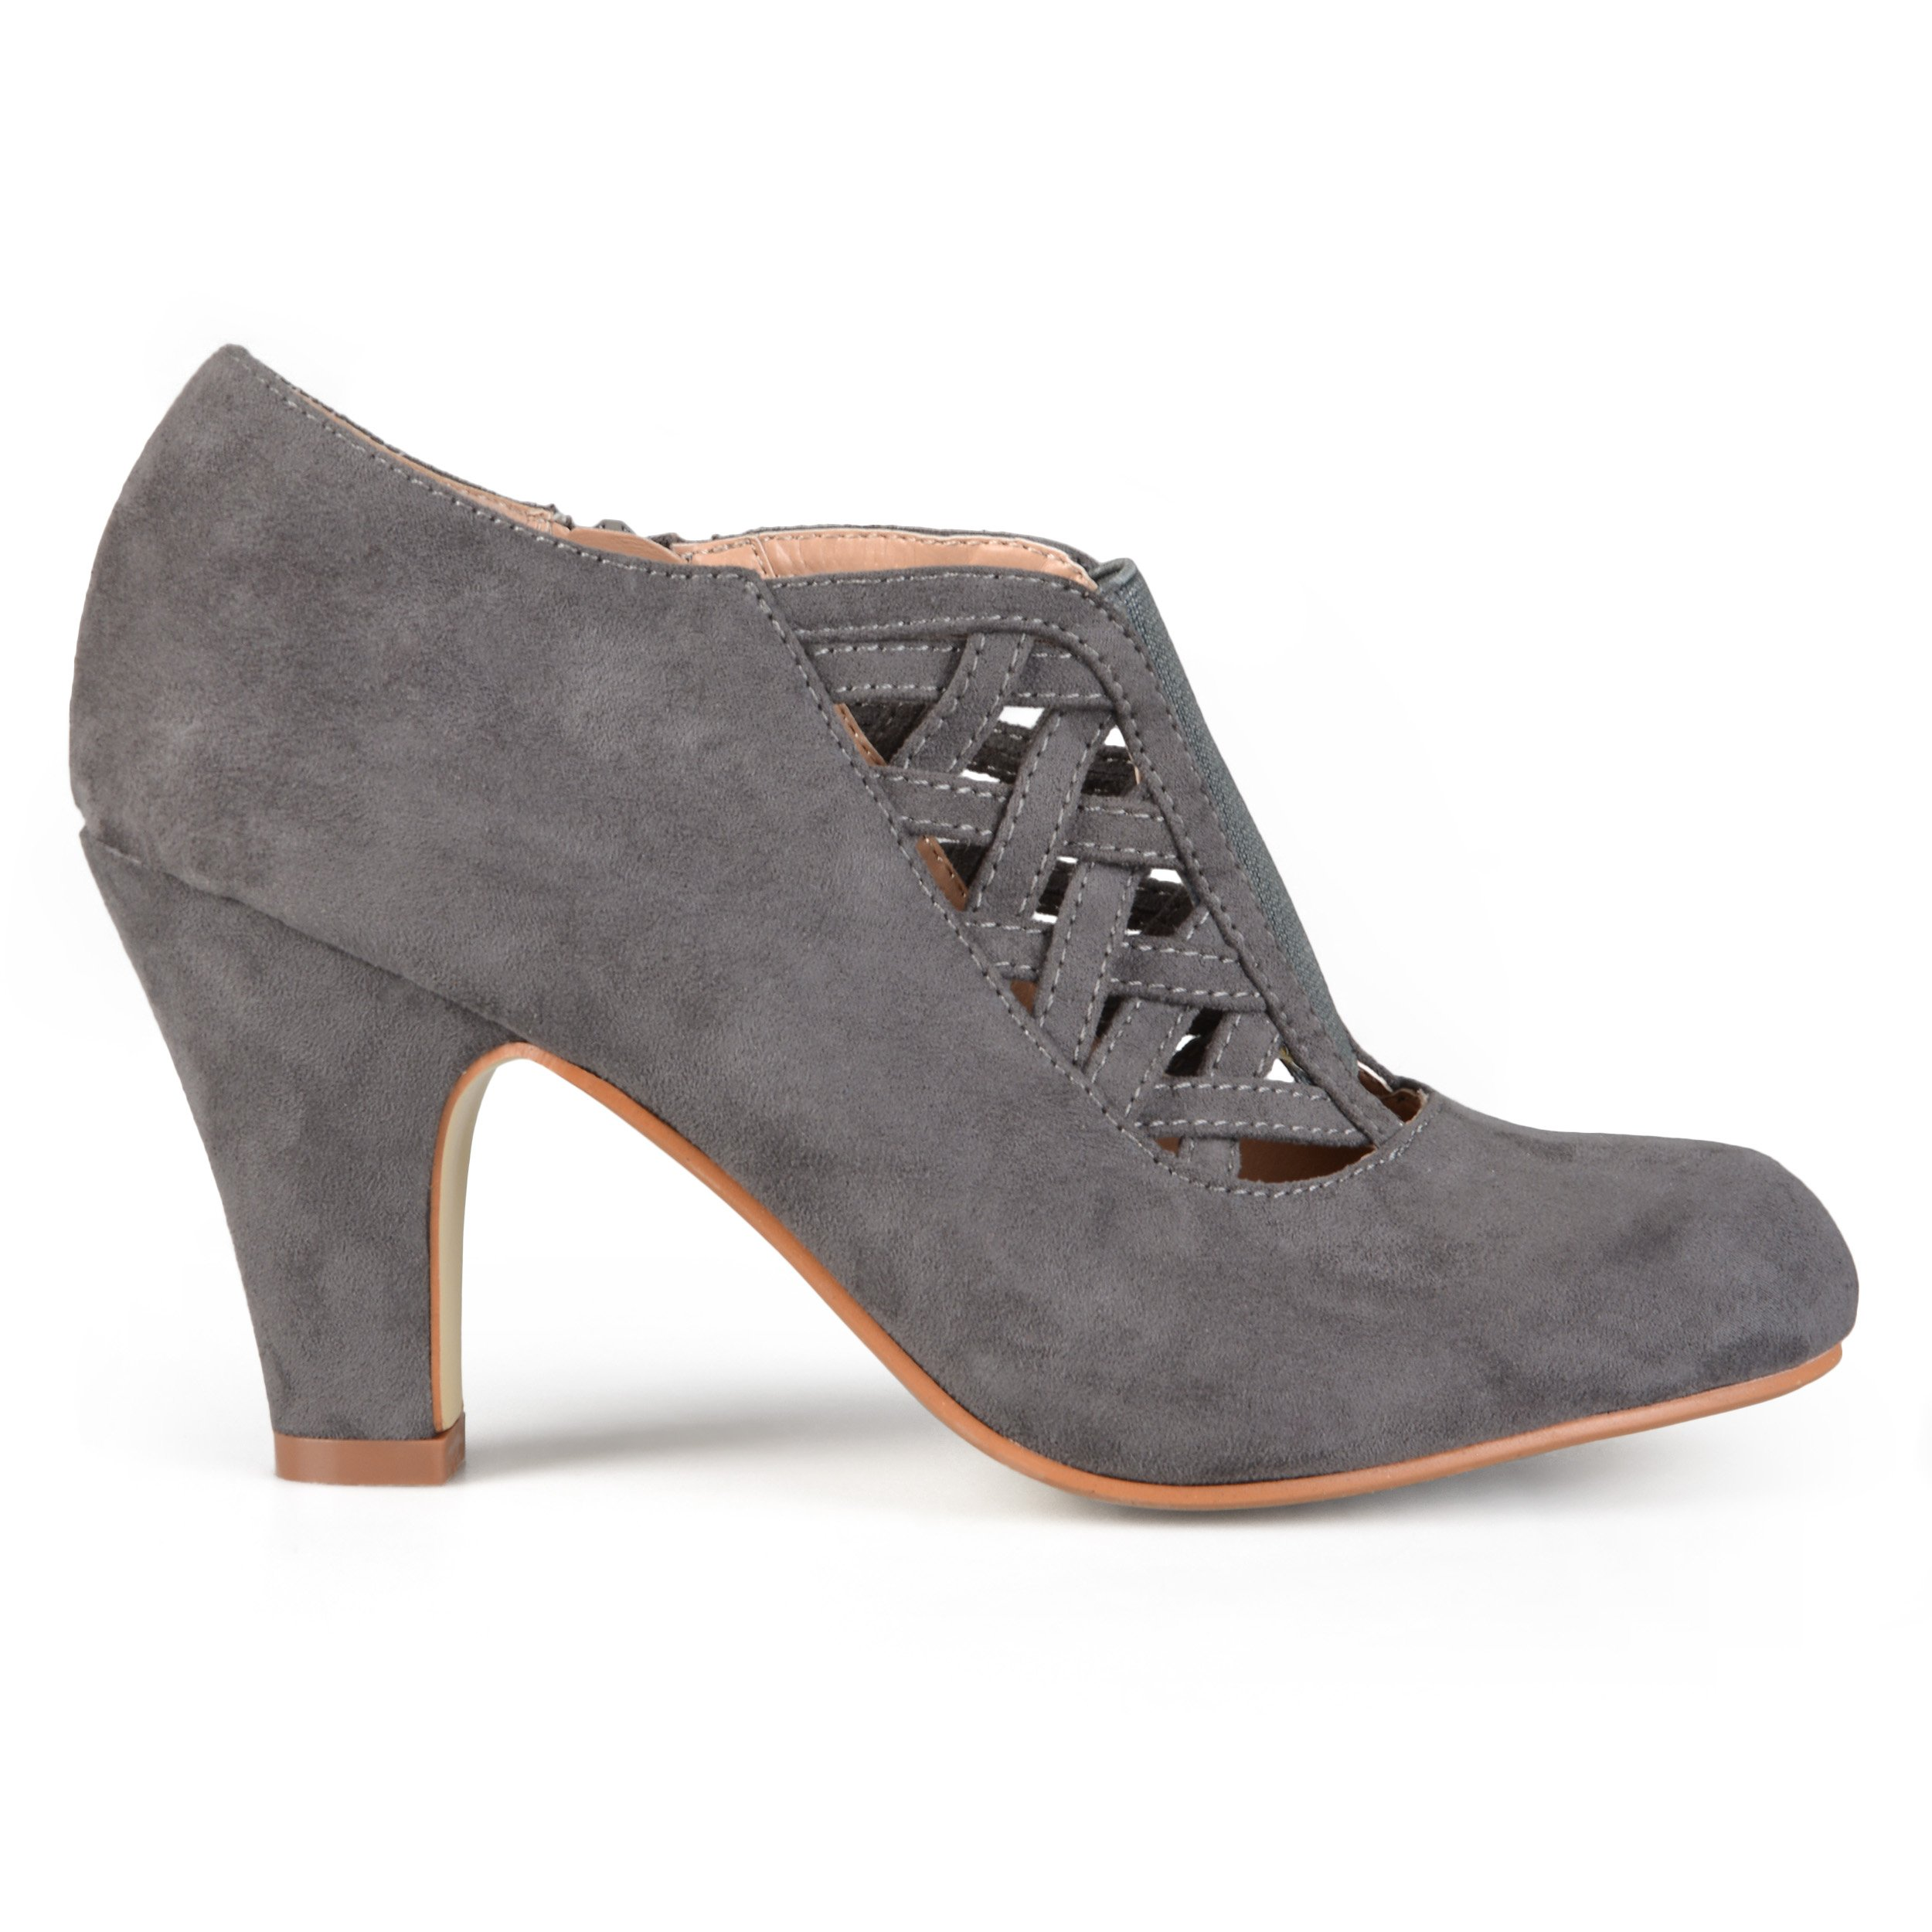 Brinley Co. Womens High Heel Round Toe Bootie Grey, 8 Wide Width US